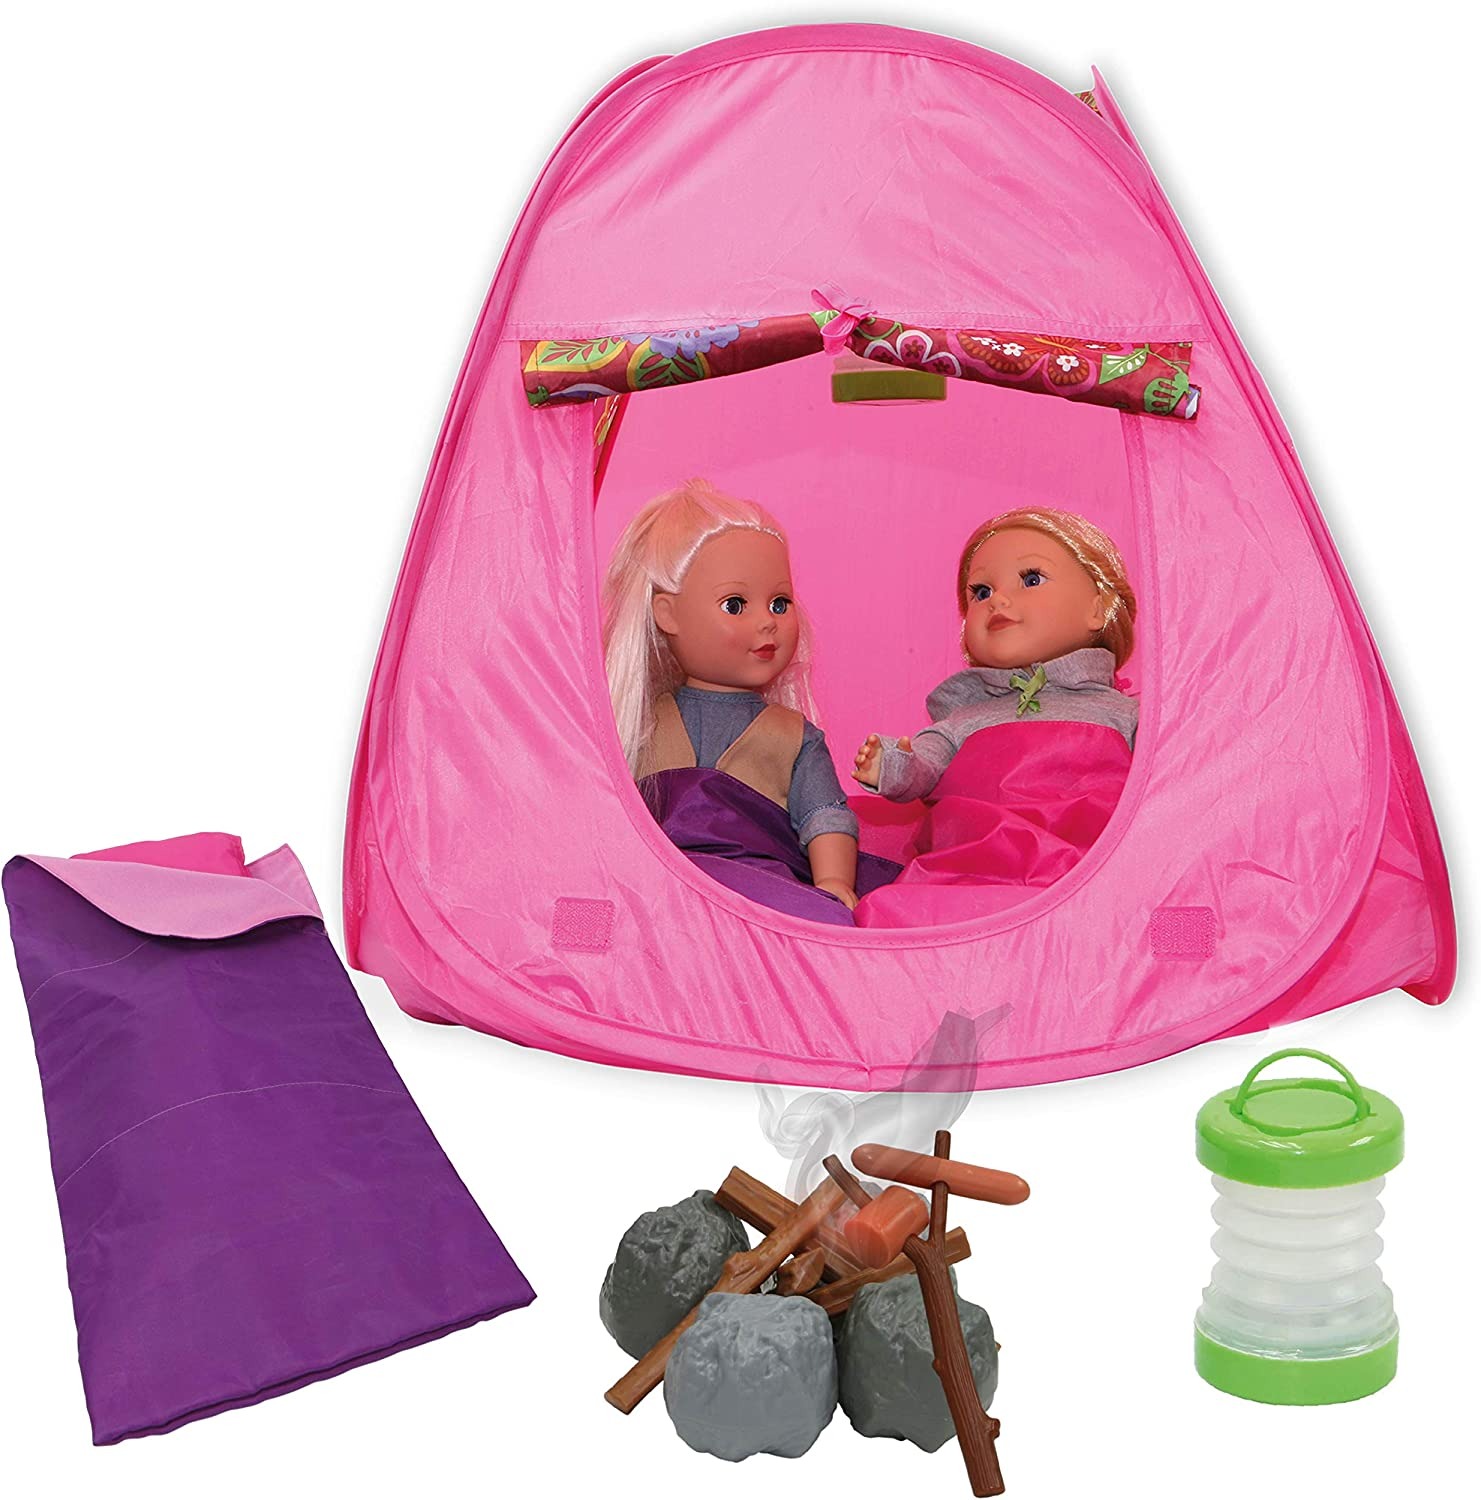 Beverly Hills Doll Collection Camping Out 15 Piece Pretend Playset for 18 Inch Dolls with Pop-up Tent, Firewood, Hotdog, Sausage, Light-up Lantern and Sleeping Bag